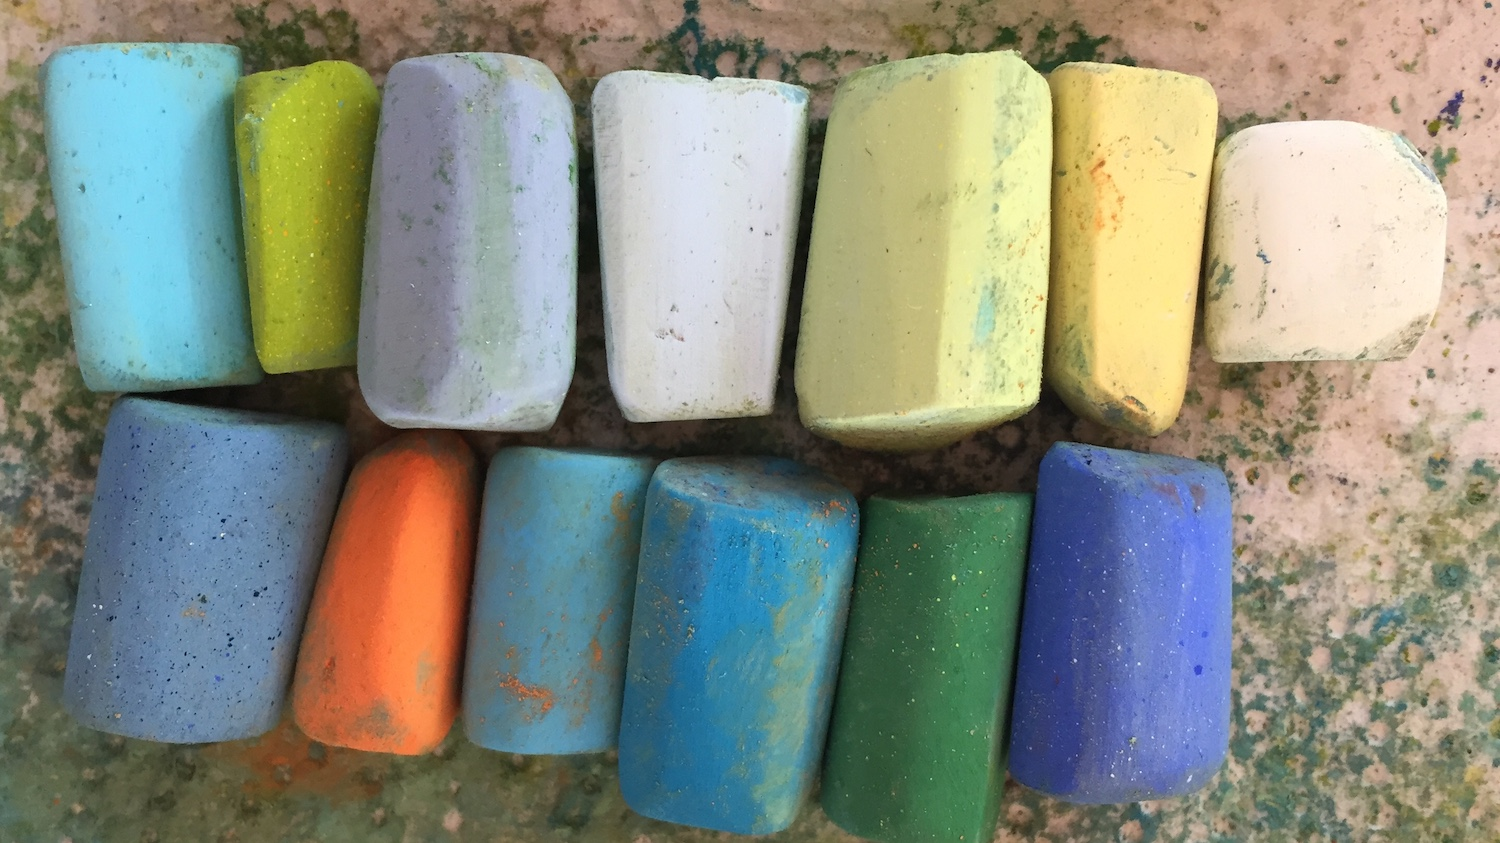 The Art of Cropping: Unison pastels used